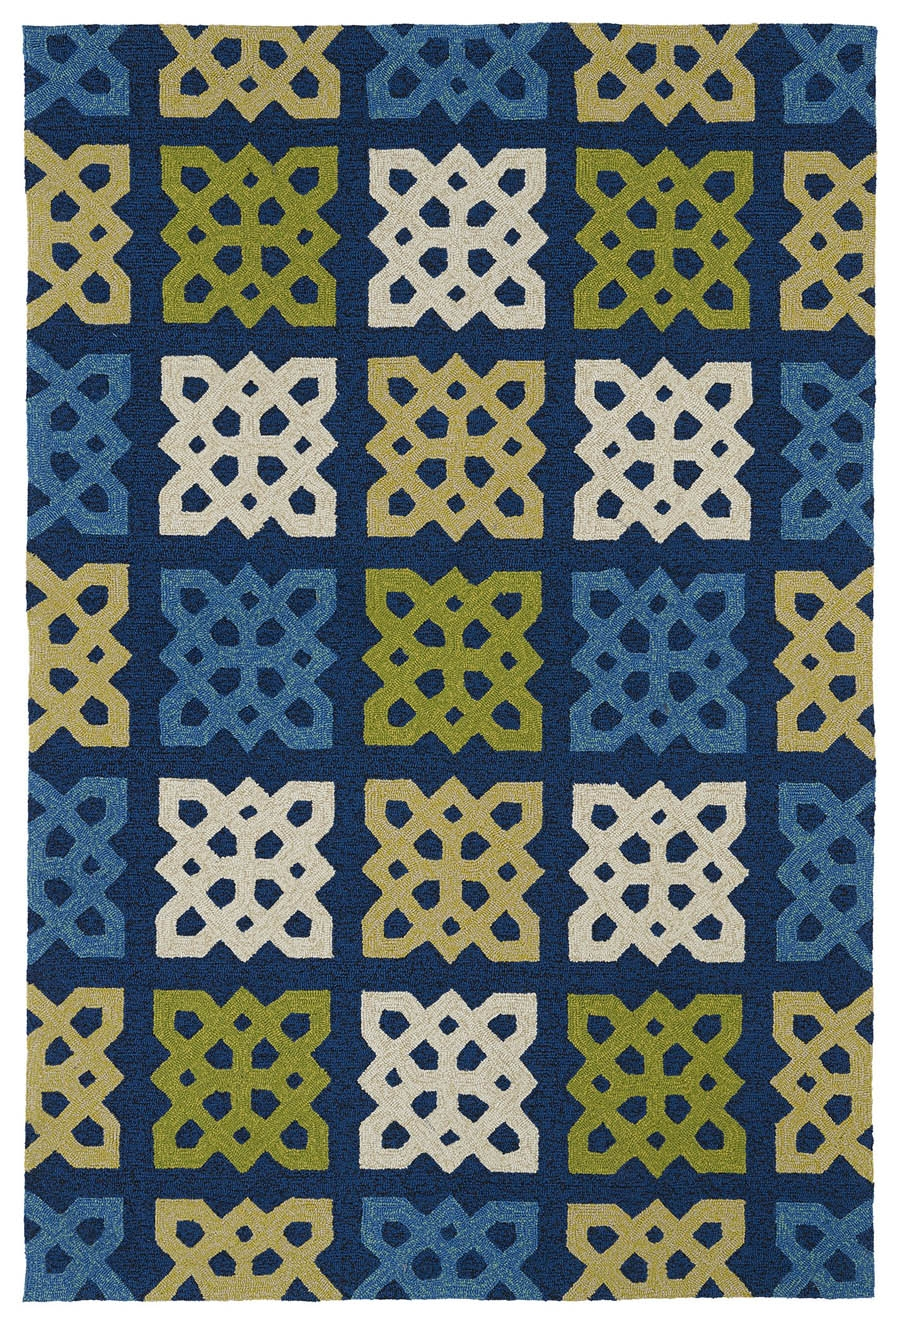 Kaleen Home And Porch 2032 17 Blue Rug